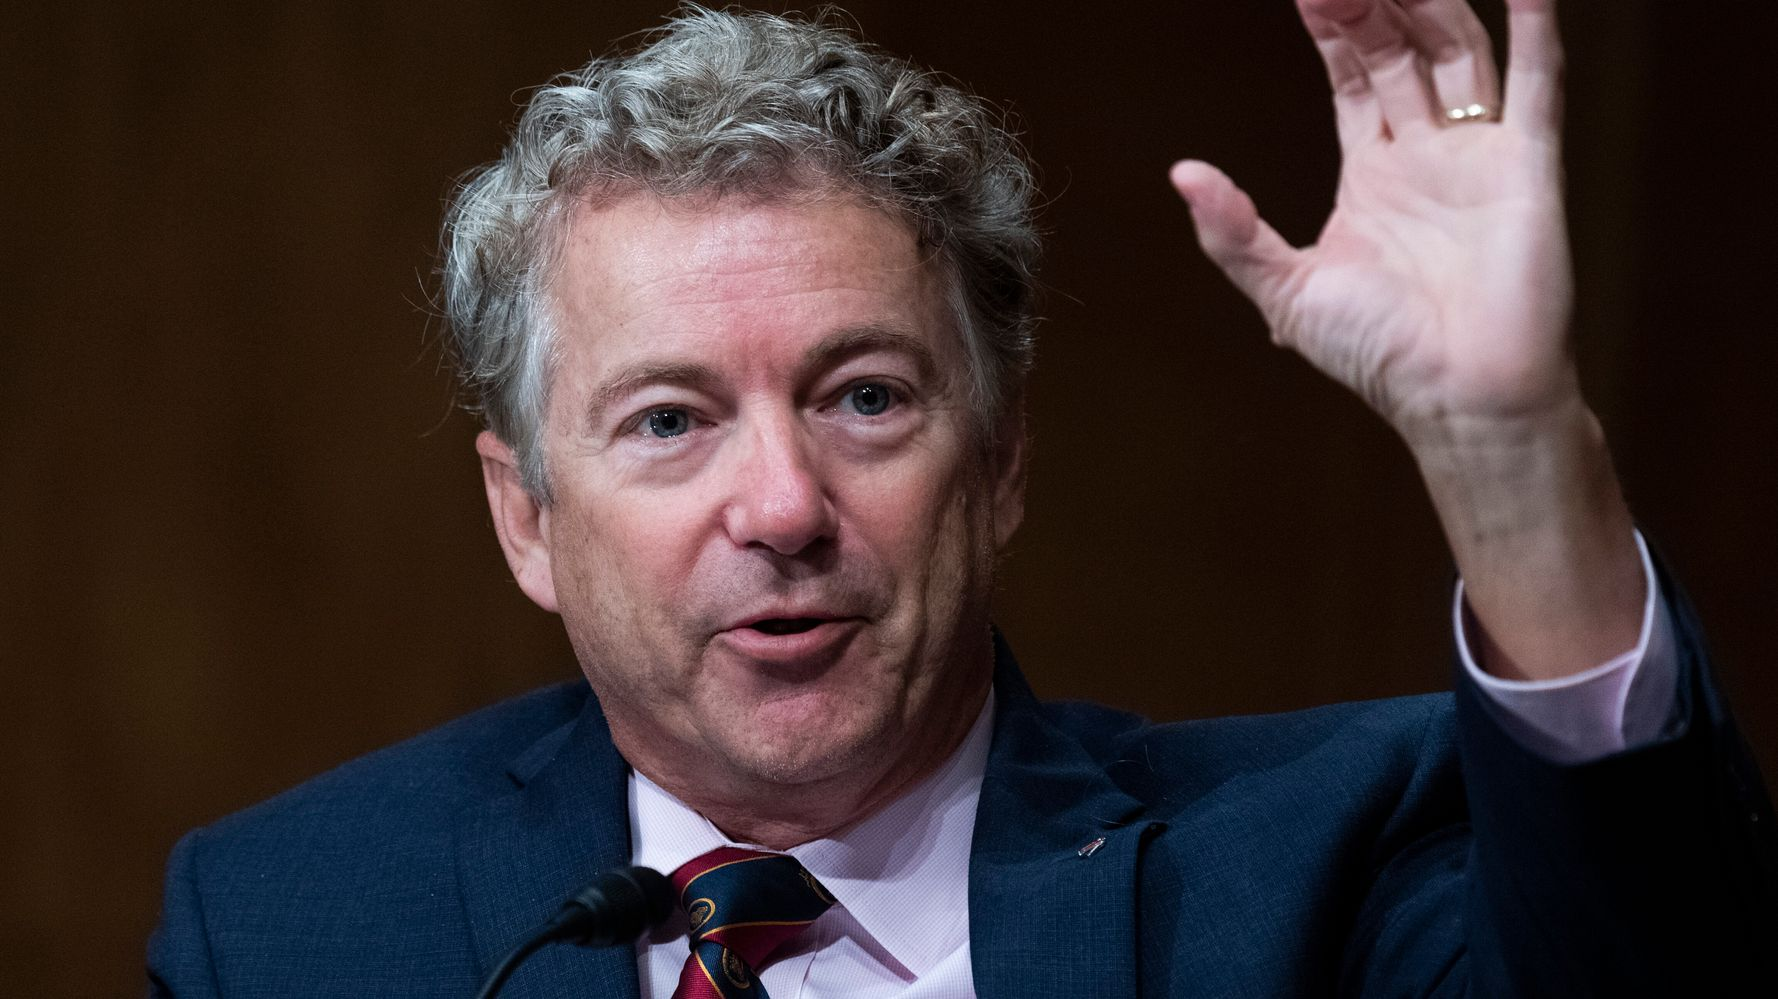 Rand Paul's Shockingly Bad Advice To Recovered COVID-19 Patients Fires Up Twitter